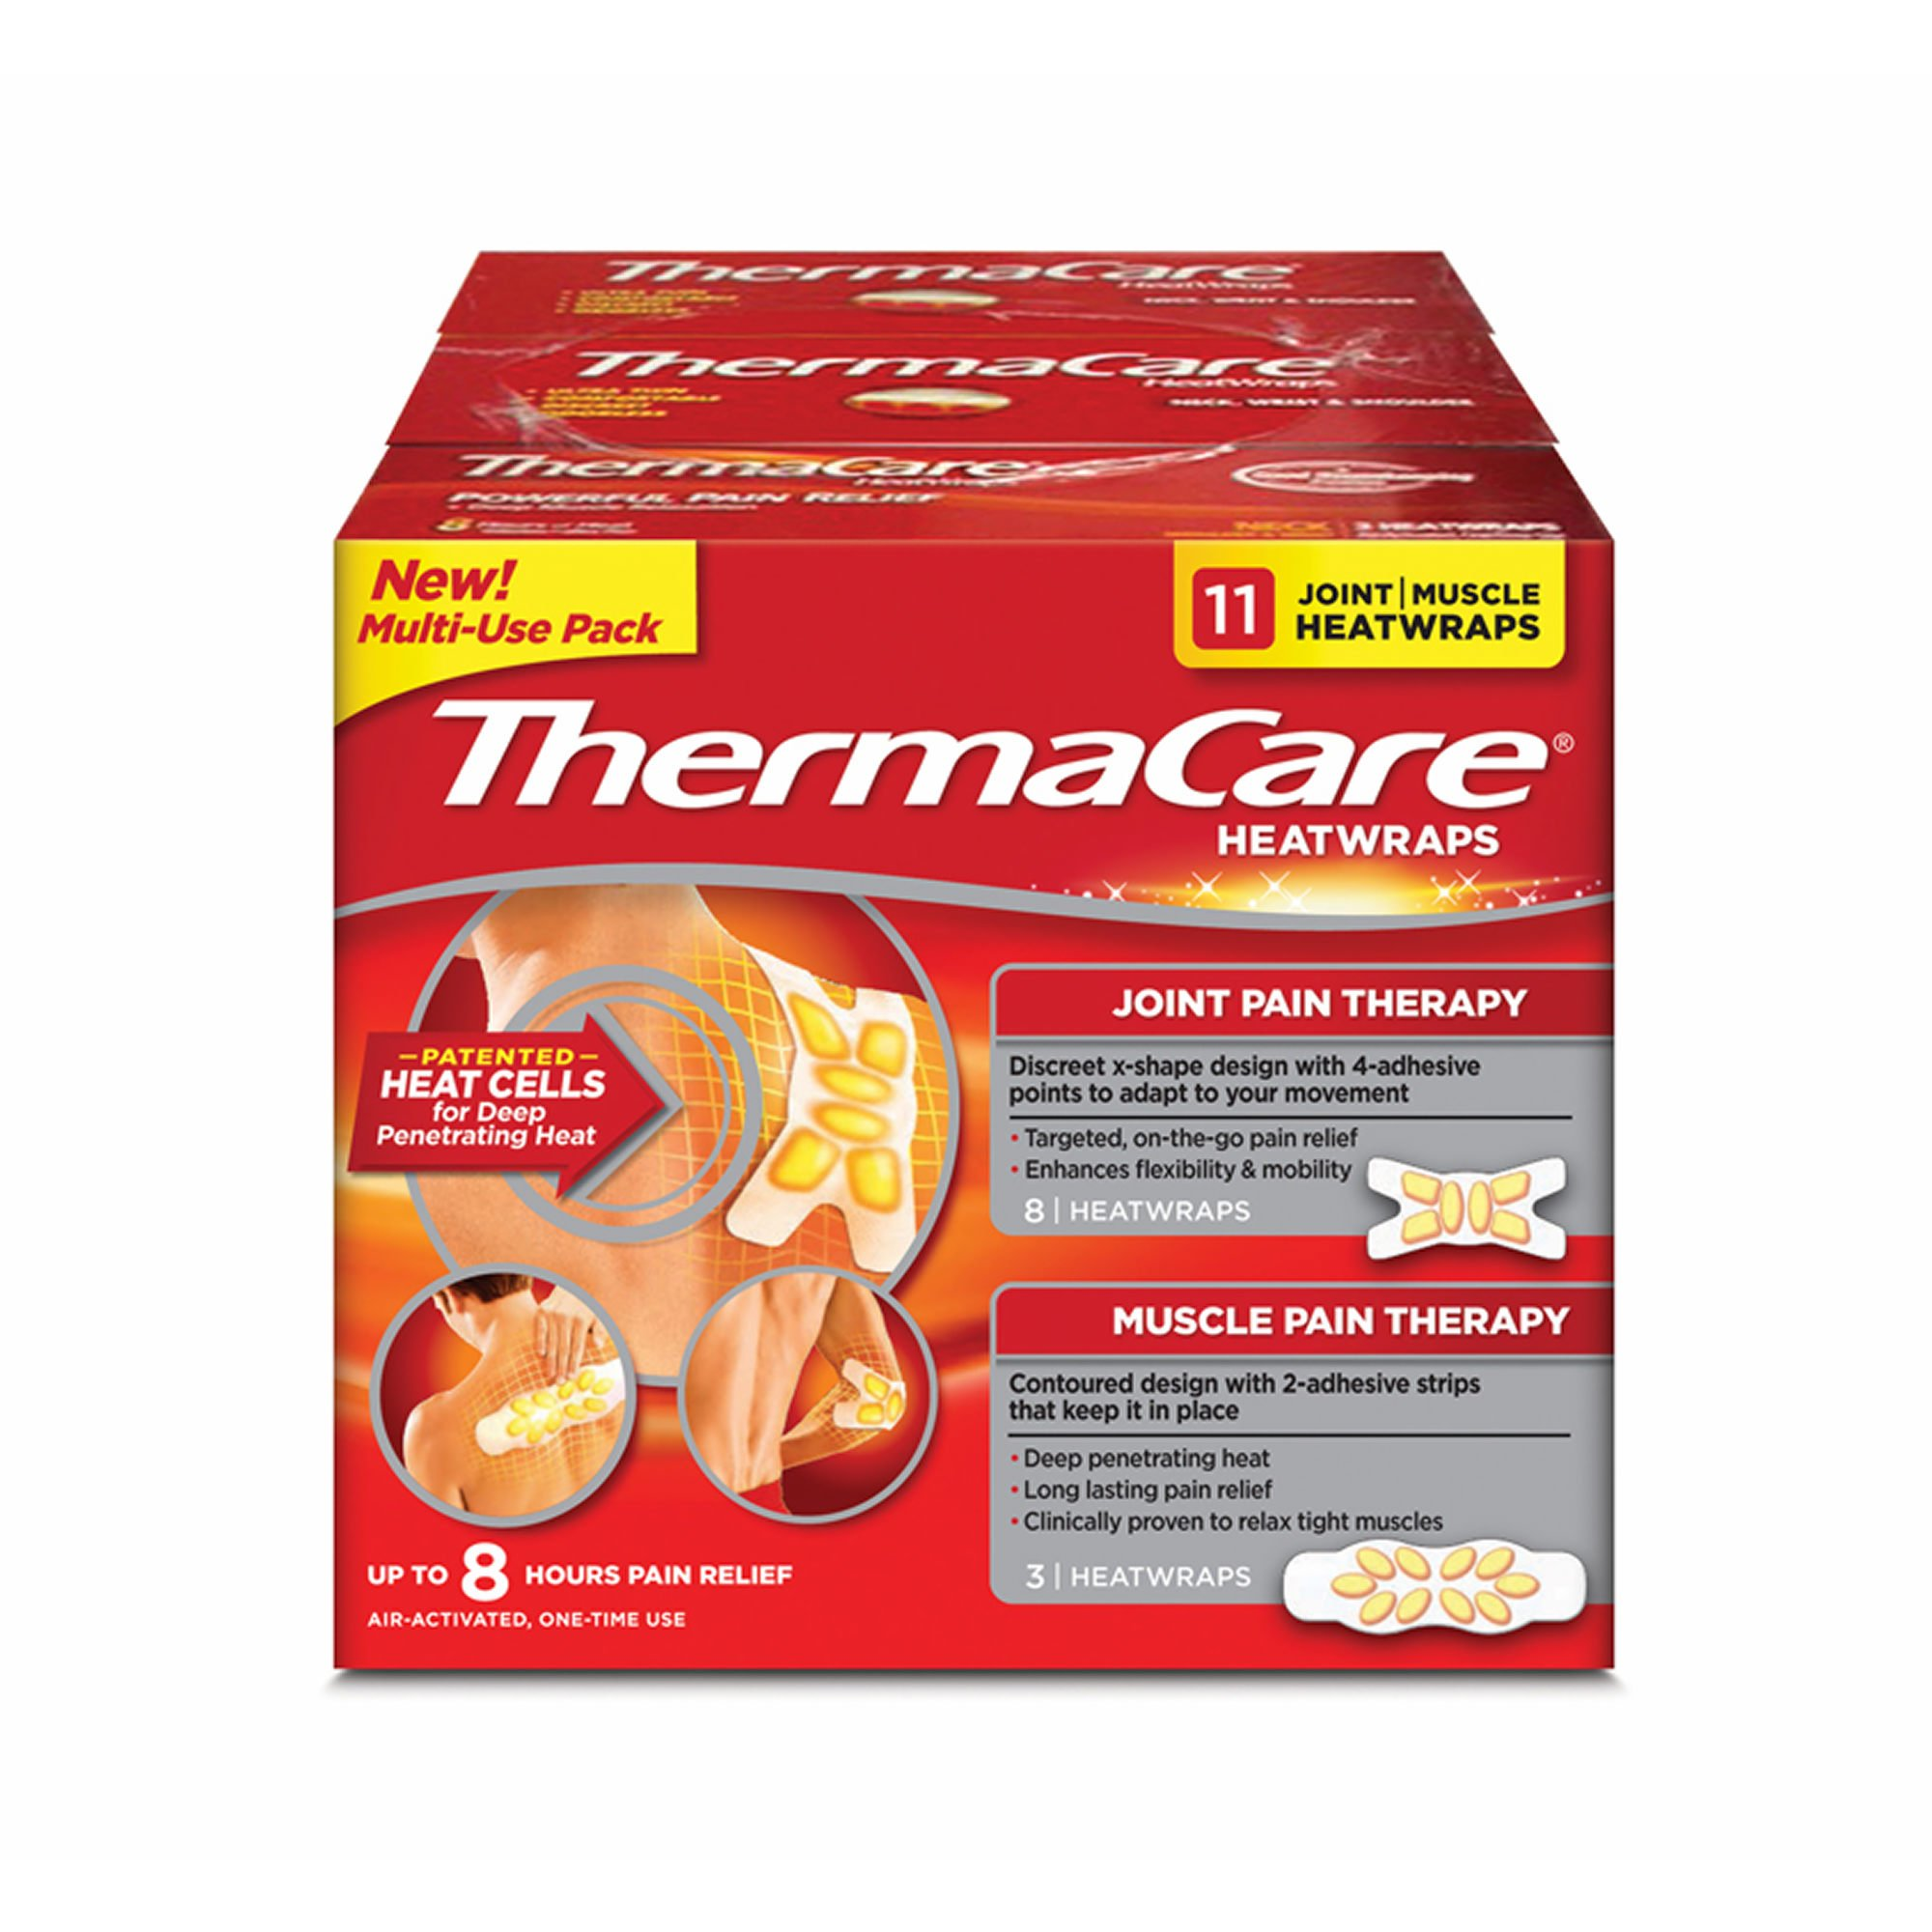 ThermaCare 8-Hour Joint/Muscle HeatWraps, 11 ct. (pack of 6)